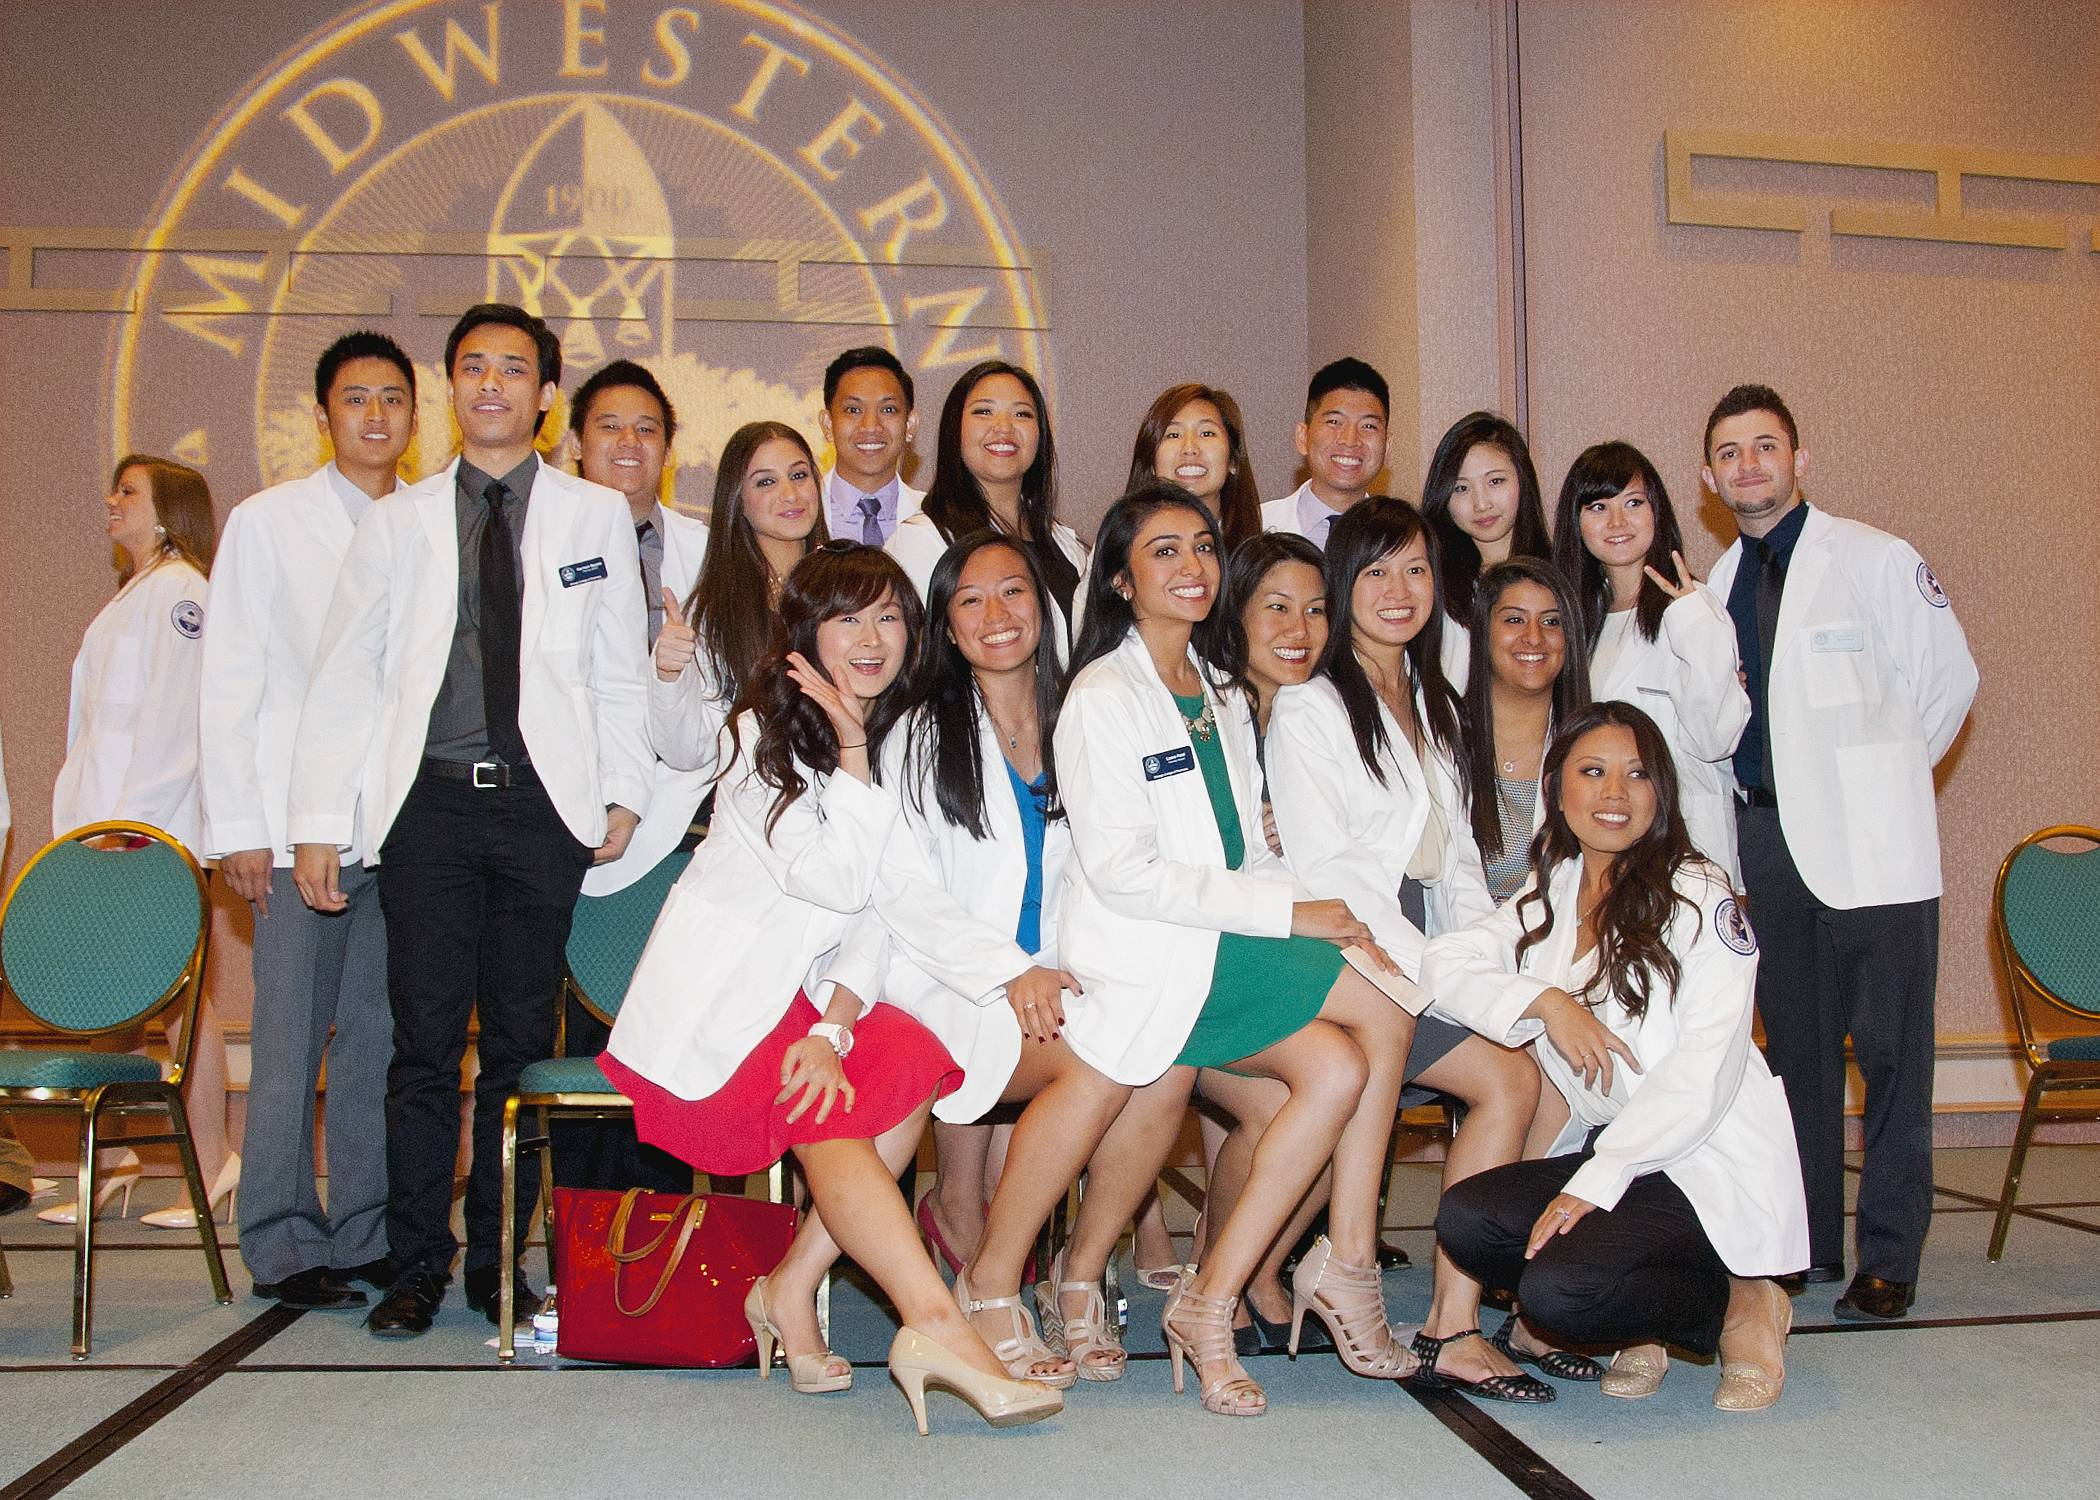 Students from Midwestern University's Chicago College of Pharmacy, celebrate the beginning of their professional careers at the White Coat Ceremony.